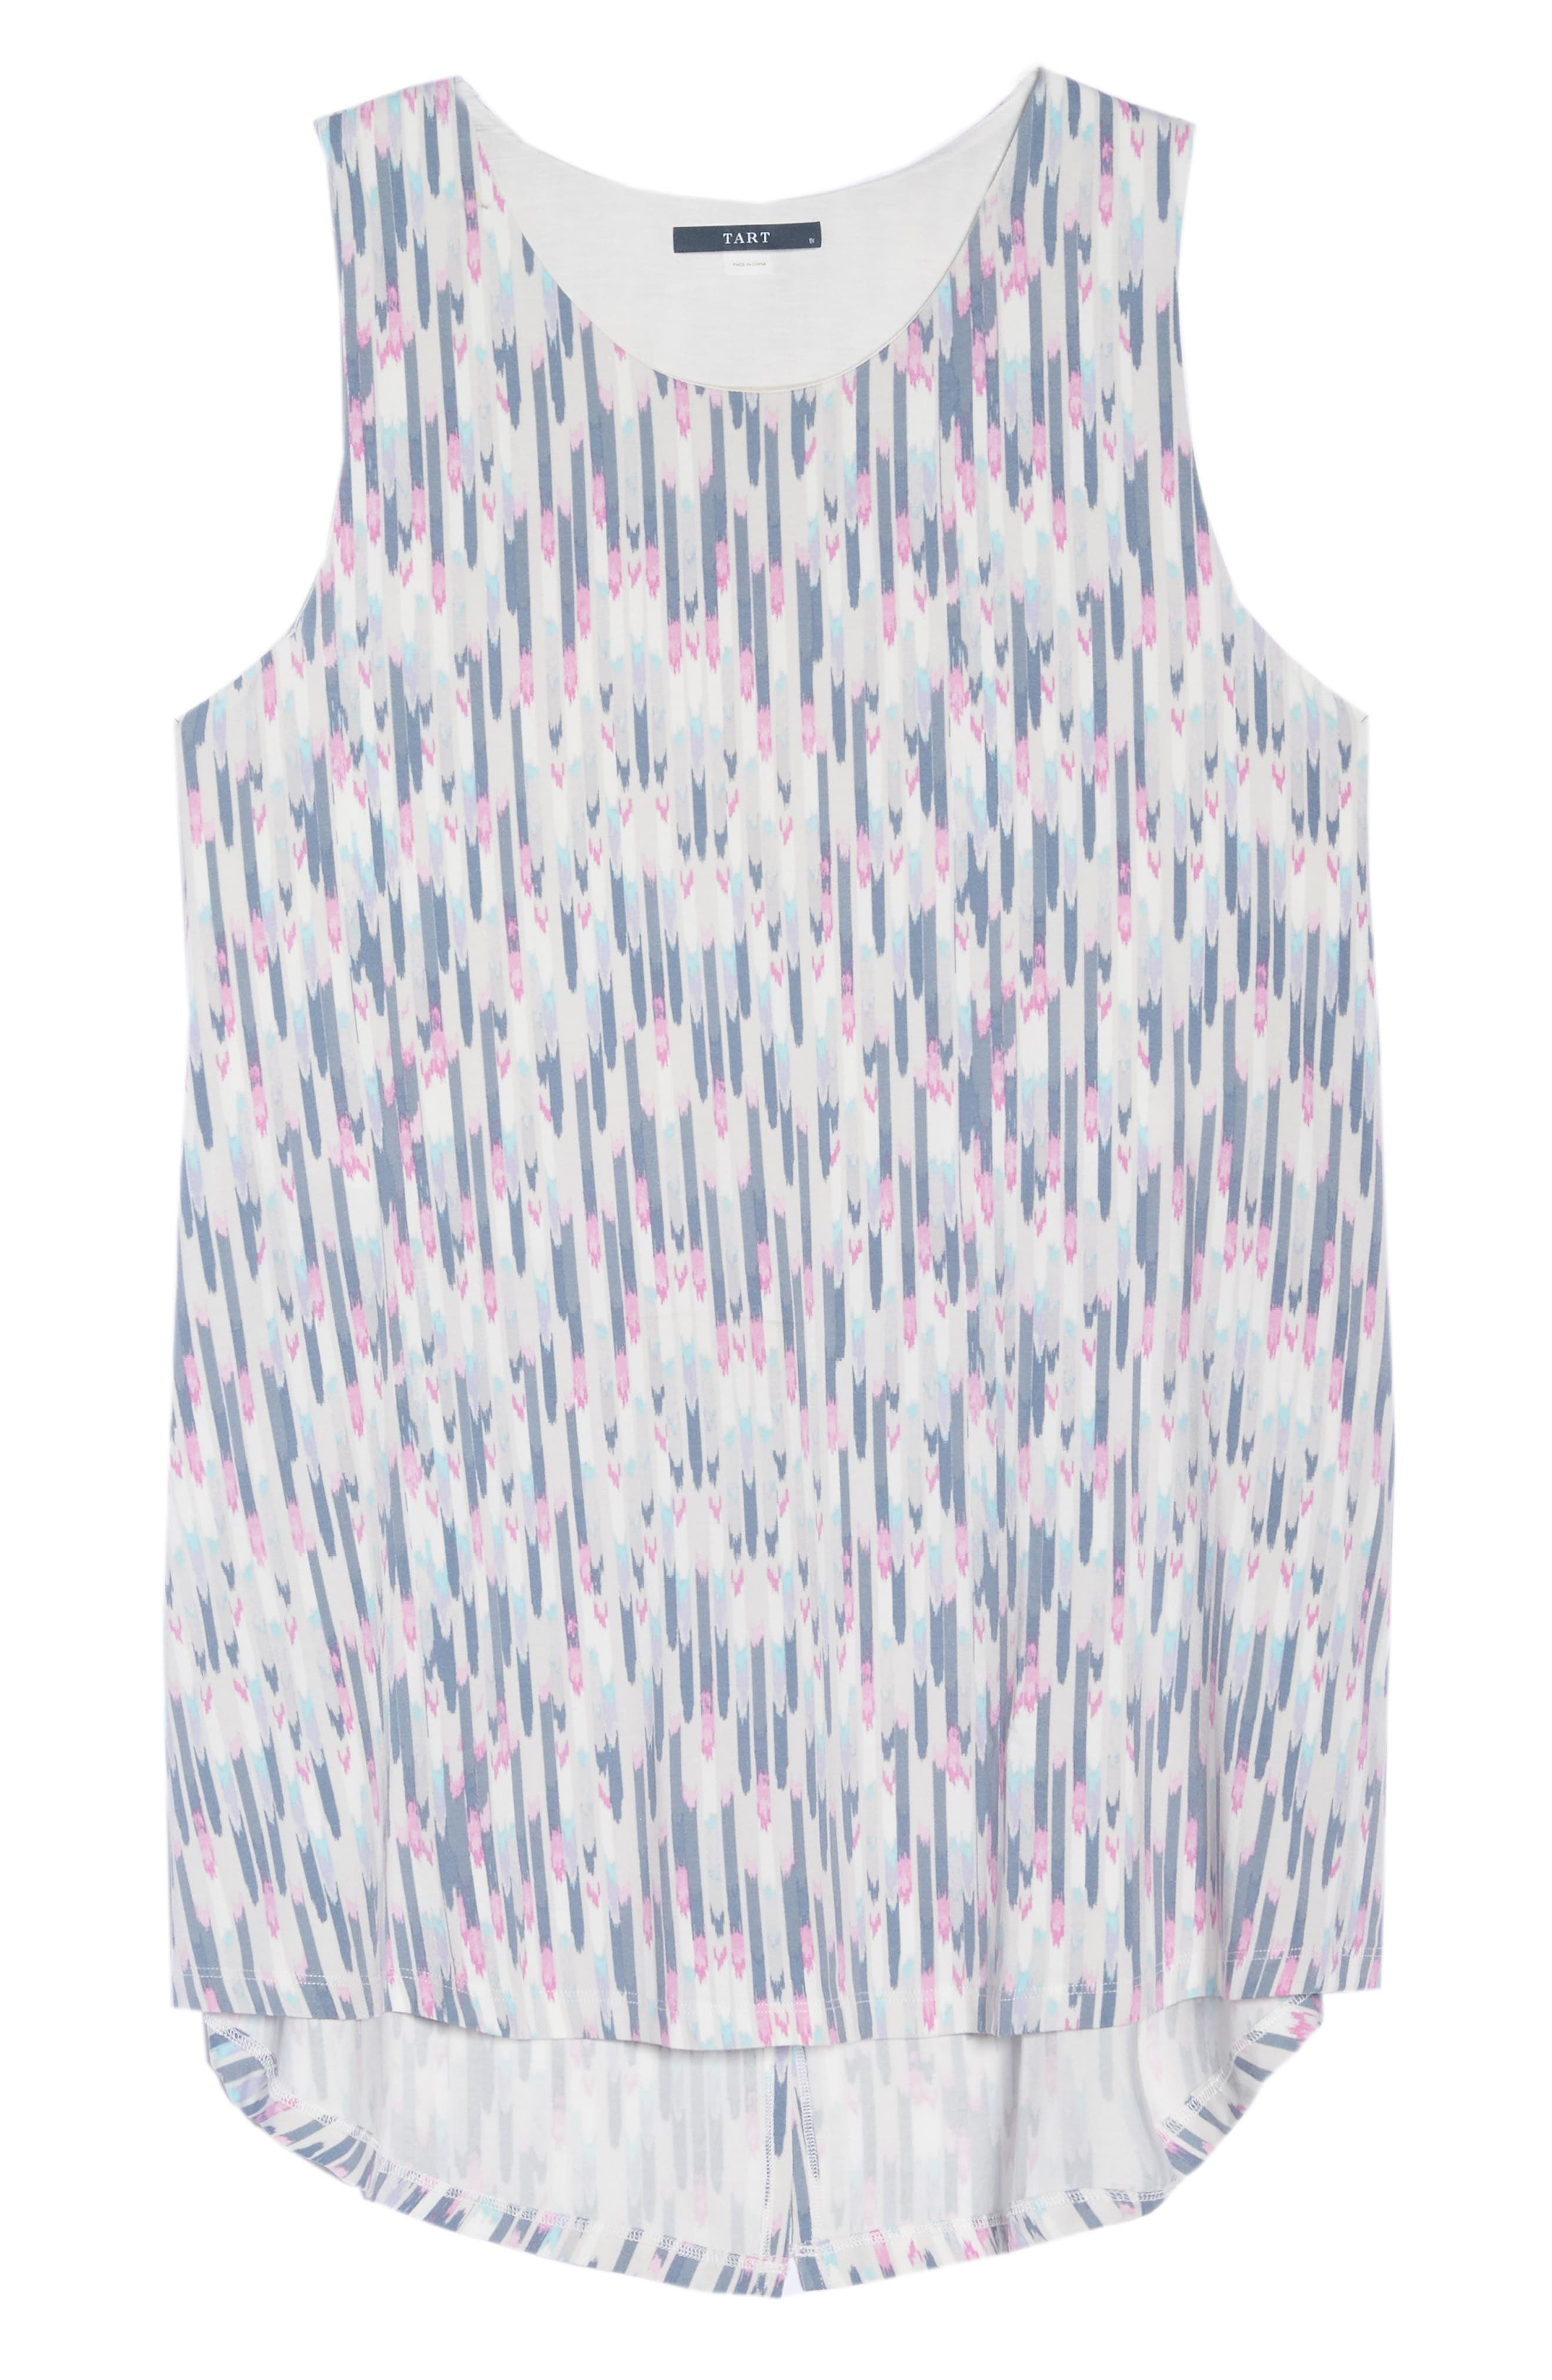 Wes Sleeveless Top,                             Alternate thumbnail 6, color,                             200